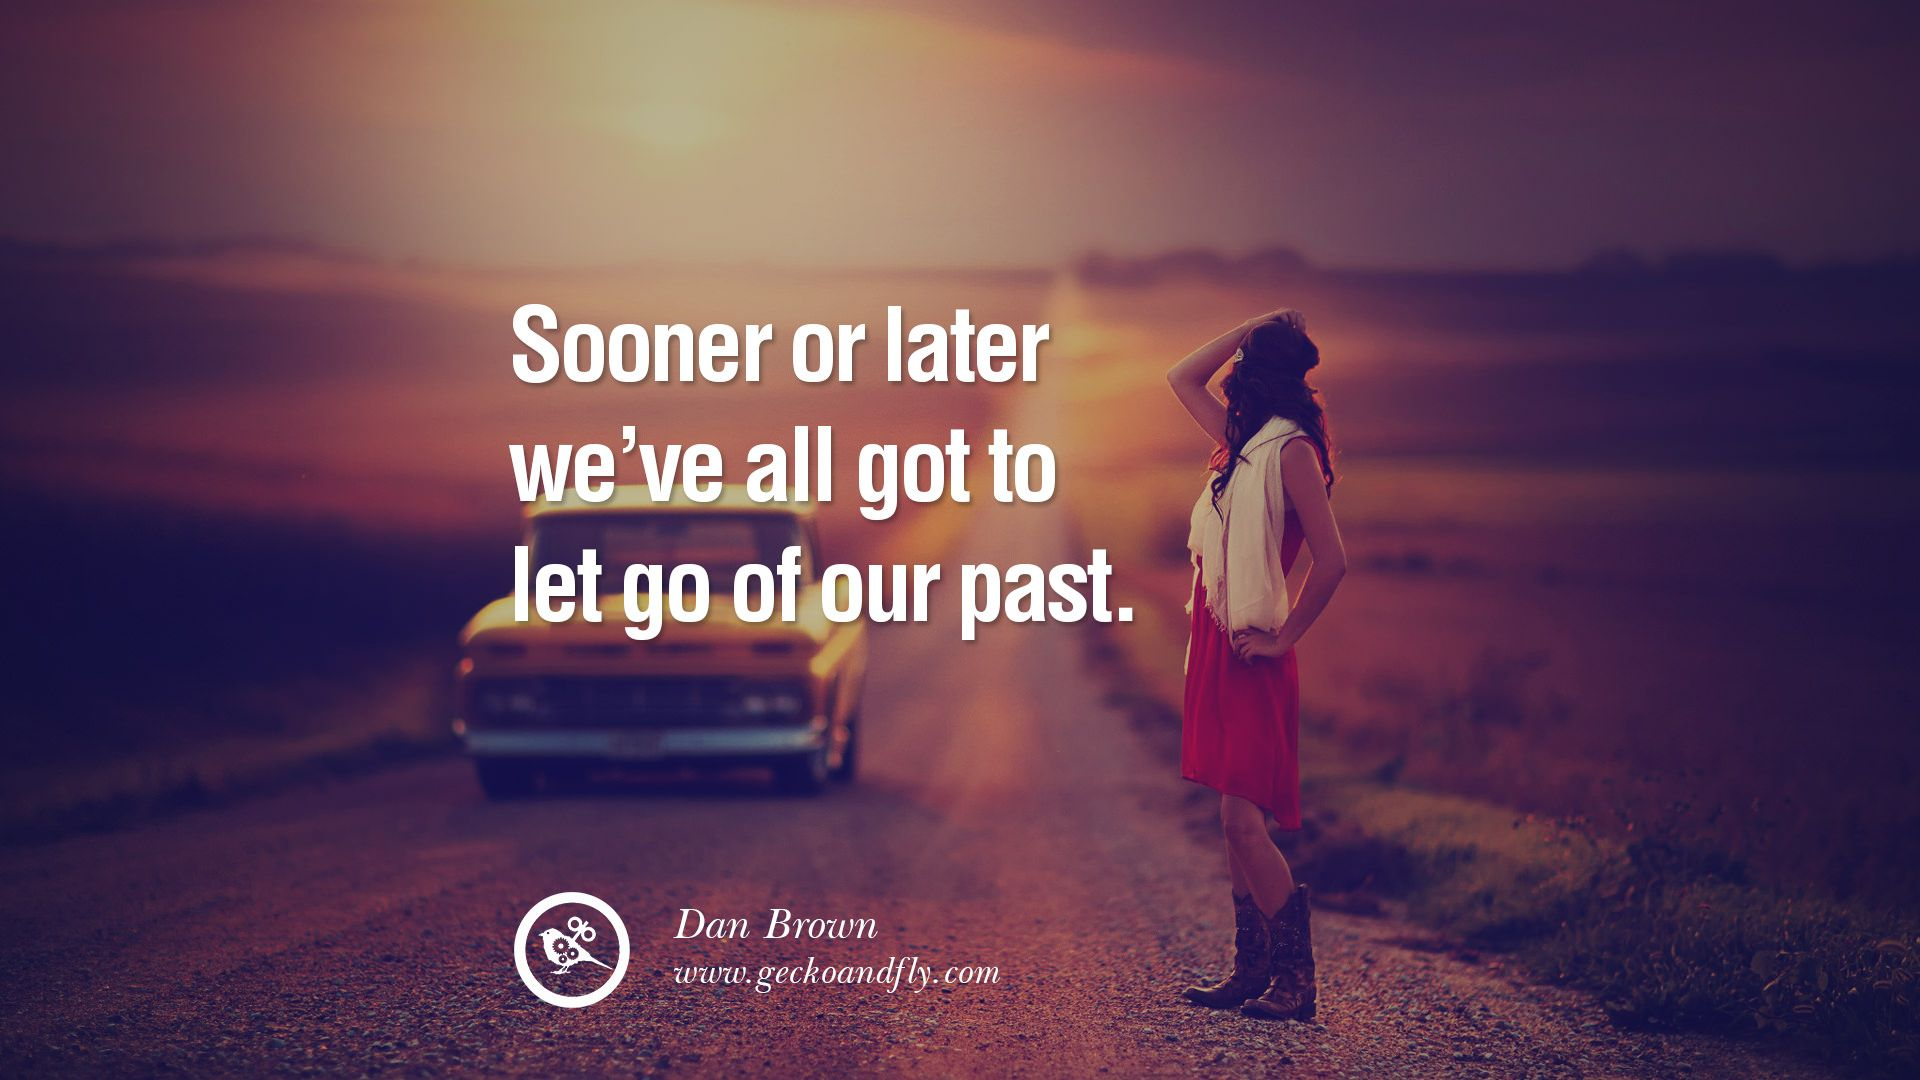 Inspirational Daily Quotes Inspirational Daily Quotes